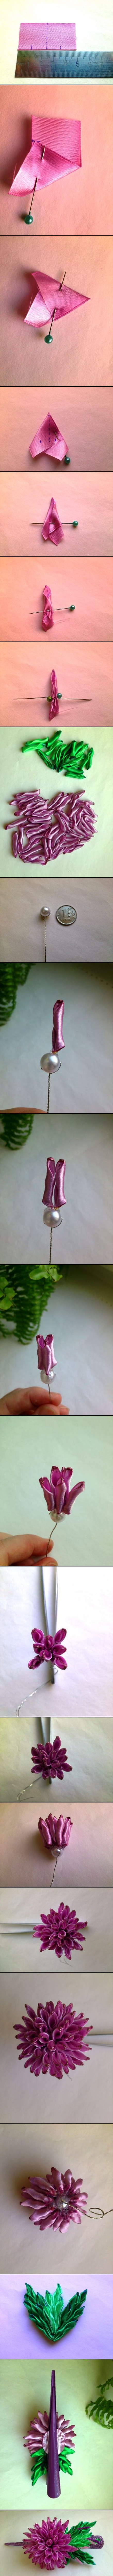 WOW!!! what an EXQUISITE flower with a super inspiring tutorial! a very clever mind who created it, too.